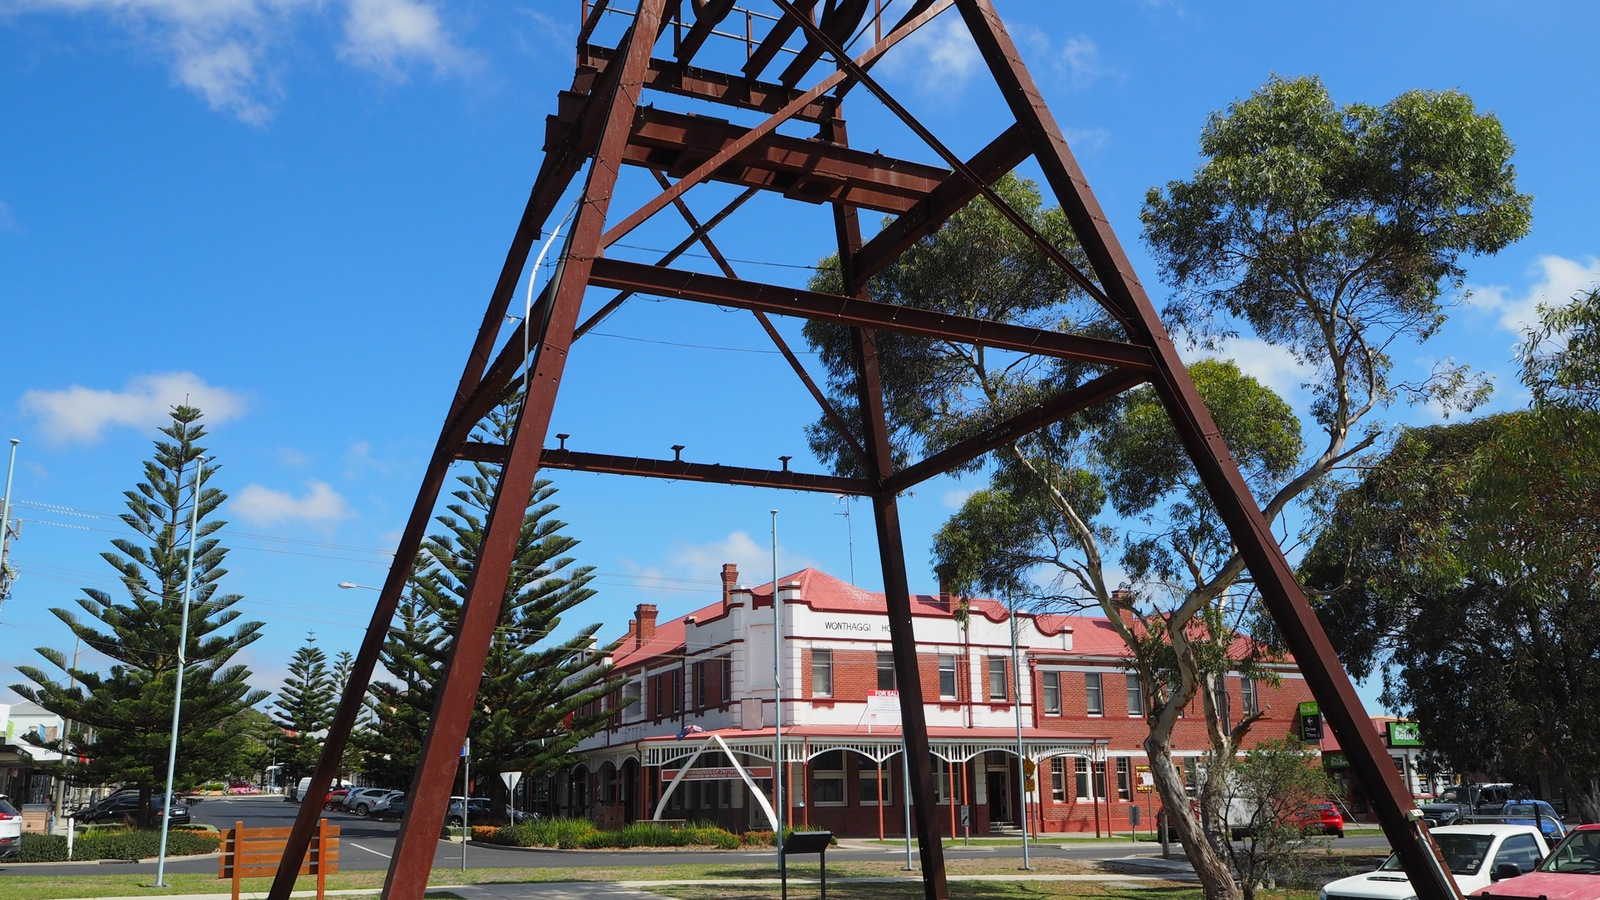 The Wonthaggi Railway Station is now a great museum with an old poppet head right outside.